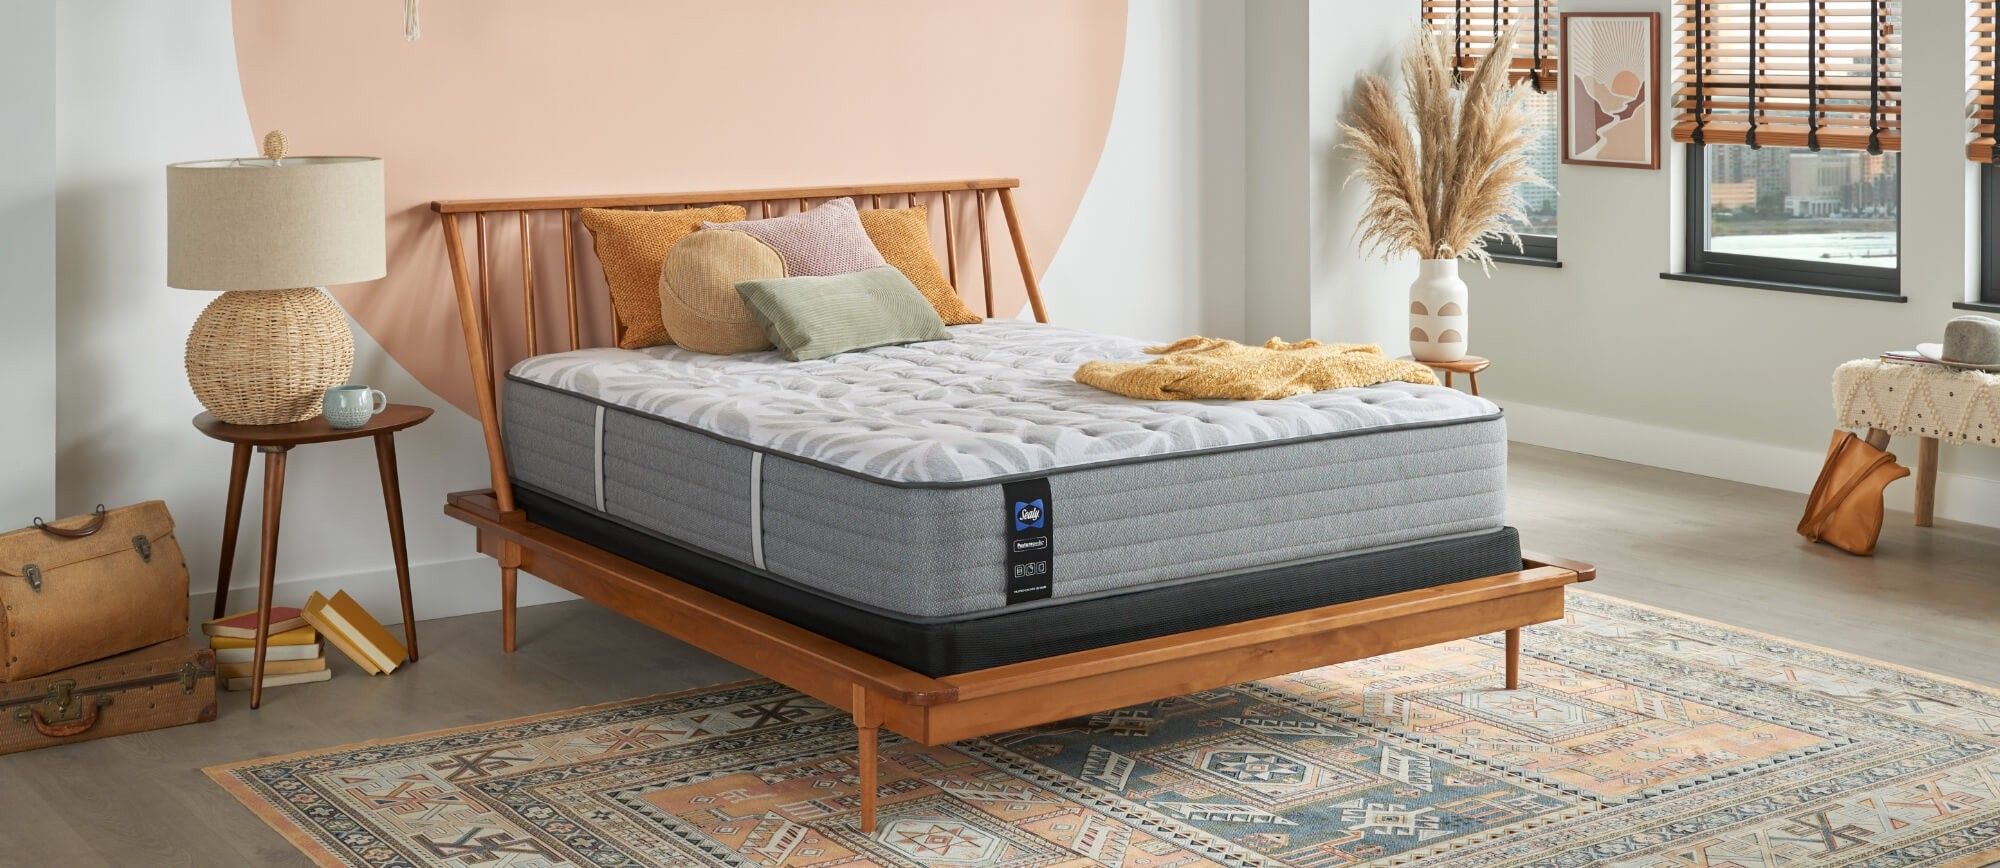 An advanced Posturepedic mattress in a styled room